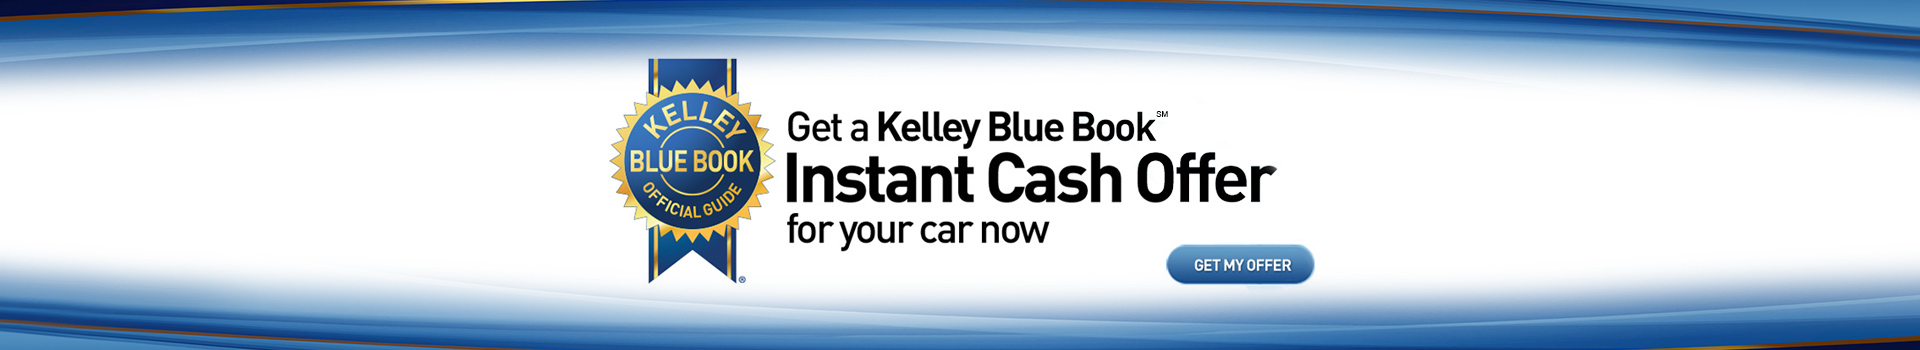 Used Cars in Paducah, KY - Ford, Chevy, Honda, Toyota & More